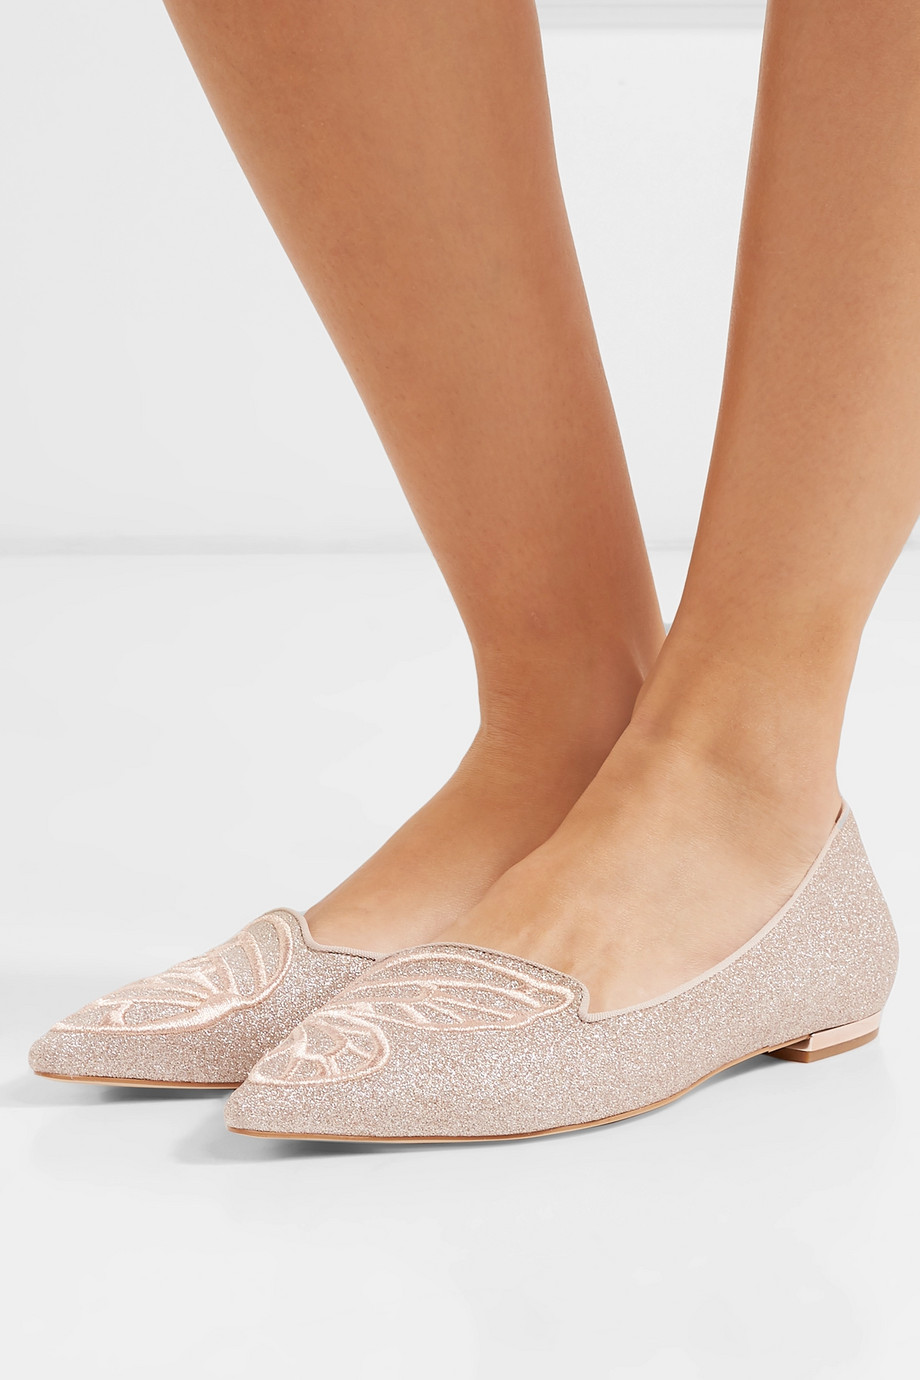 Leather ballerinas Sophia Webster buy Leather ballerinas Sophia Webster internet shop